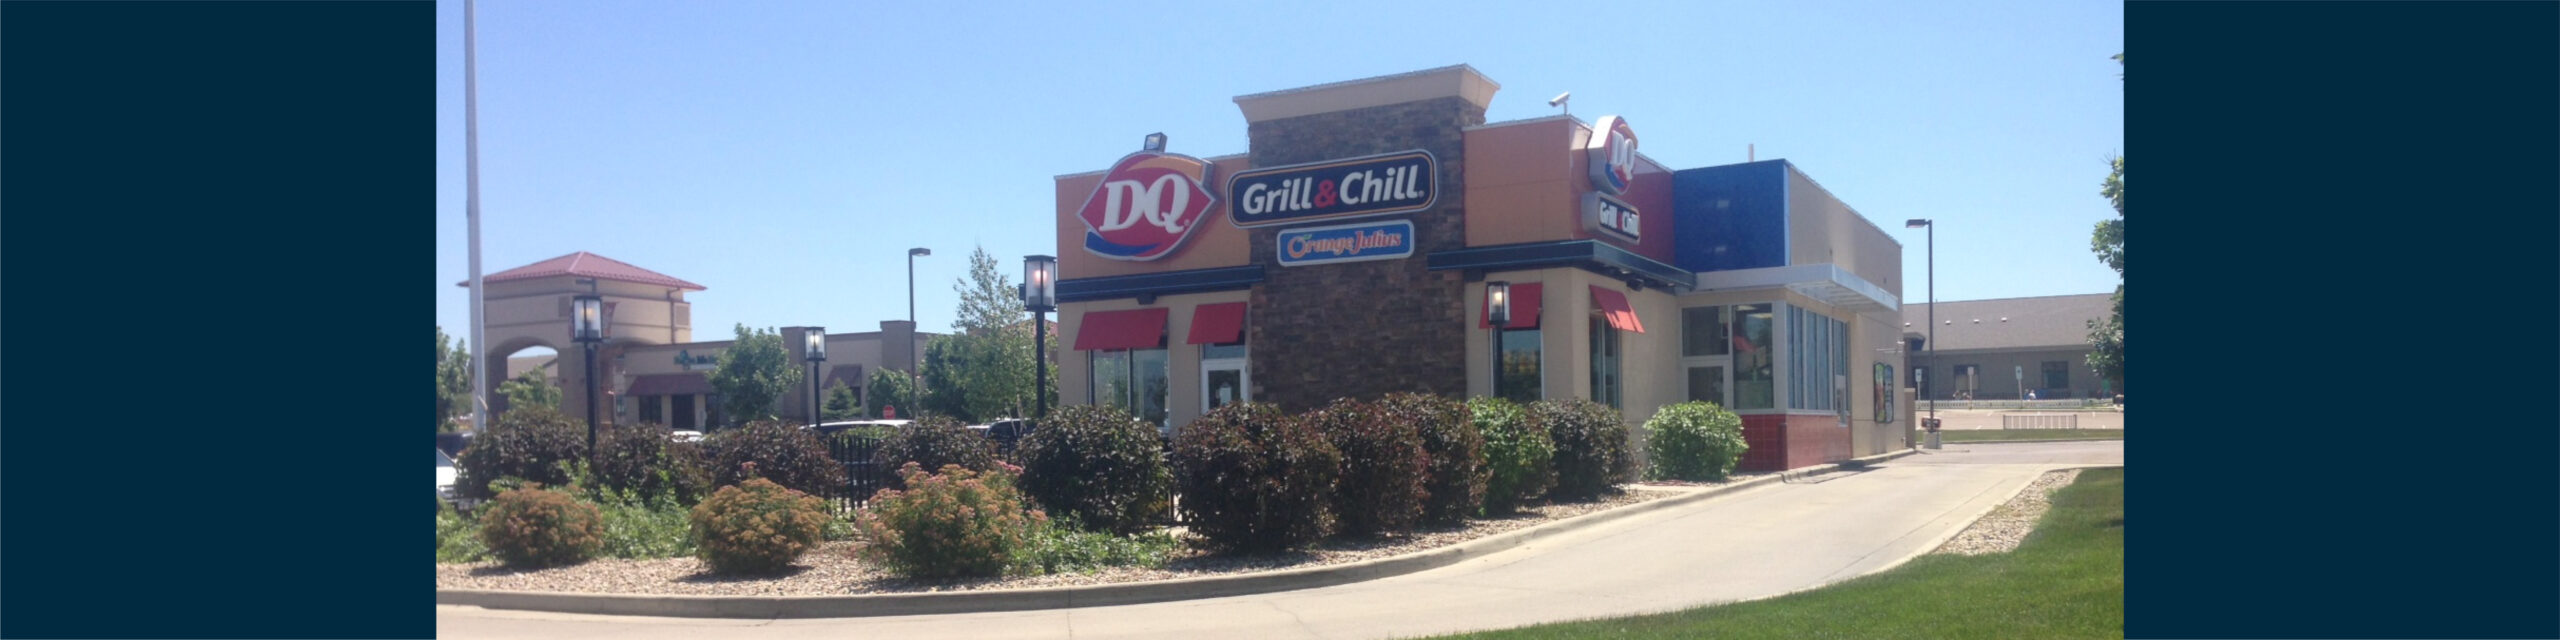 Sioux Falls, SD - 5001 South Crossing Fourteen Foods DQ